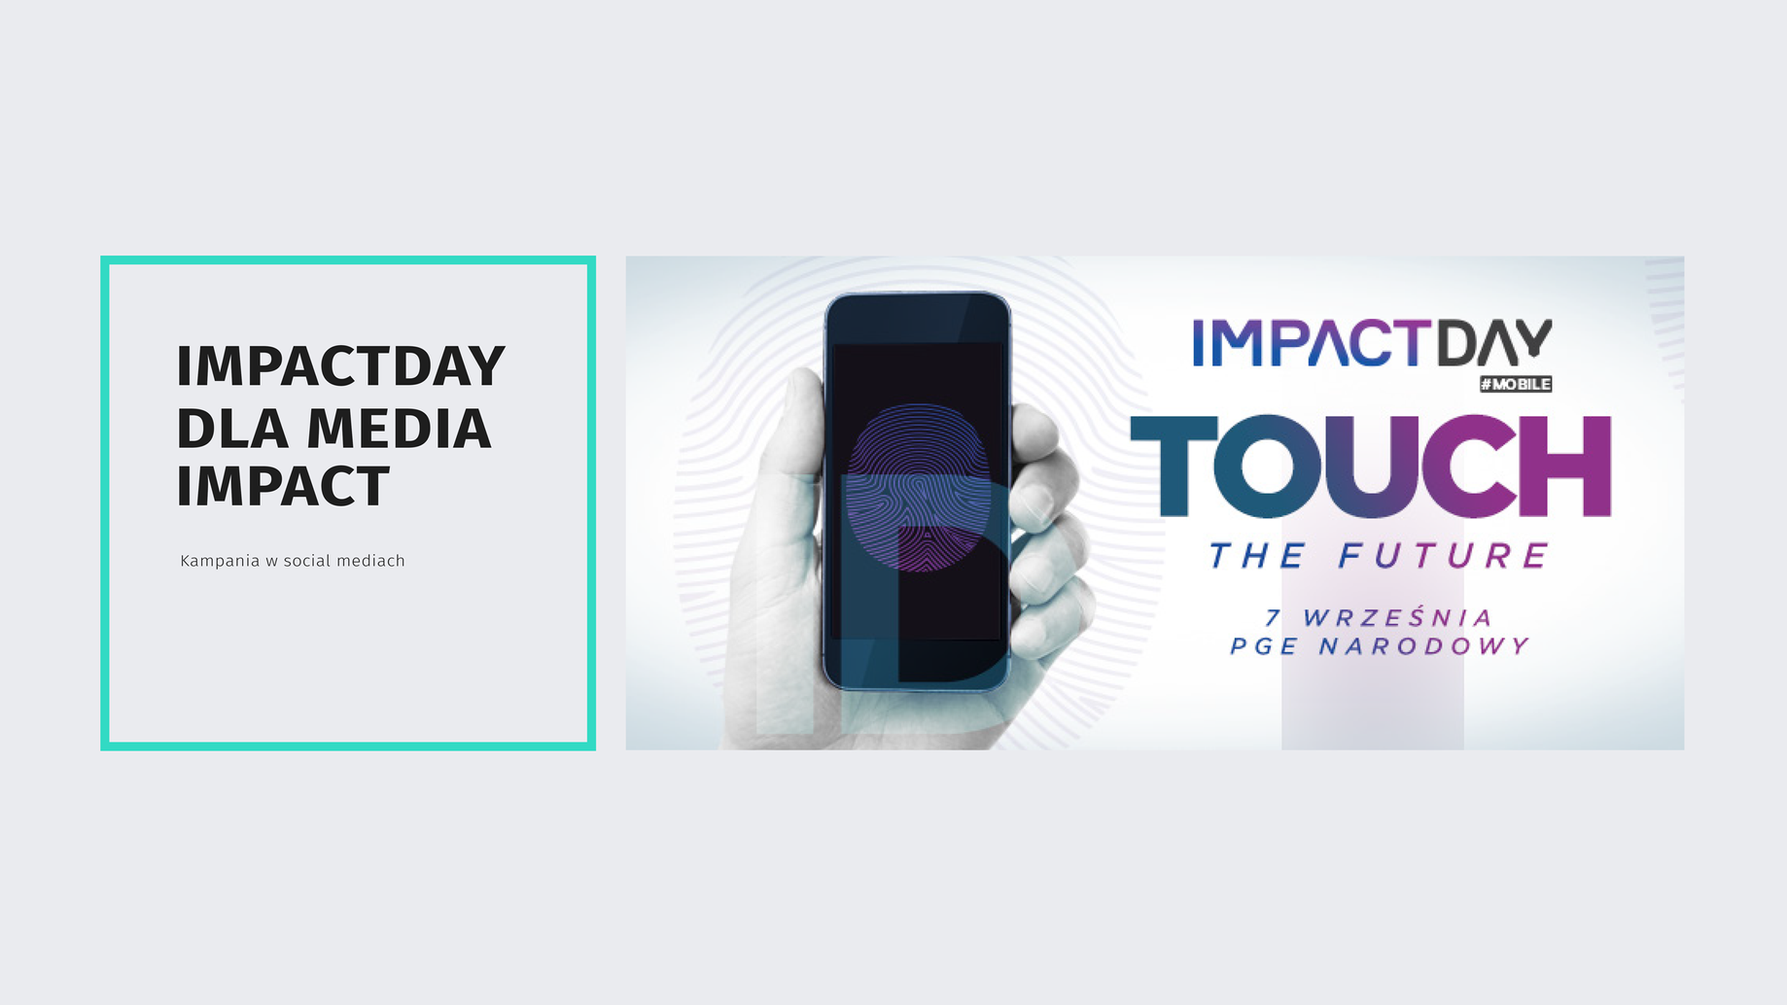 IMPACTDAY - MEDIA IMPACT POLSKA